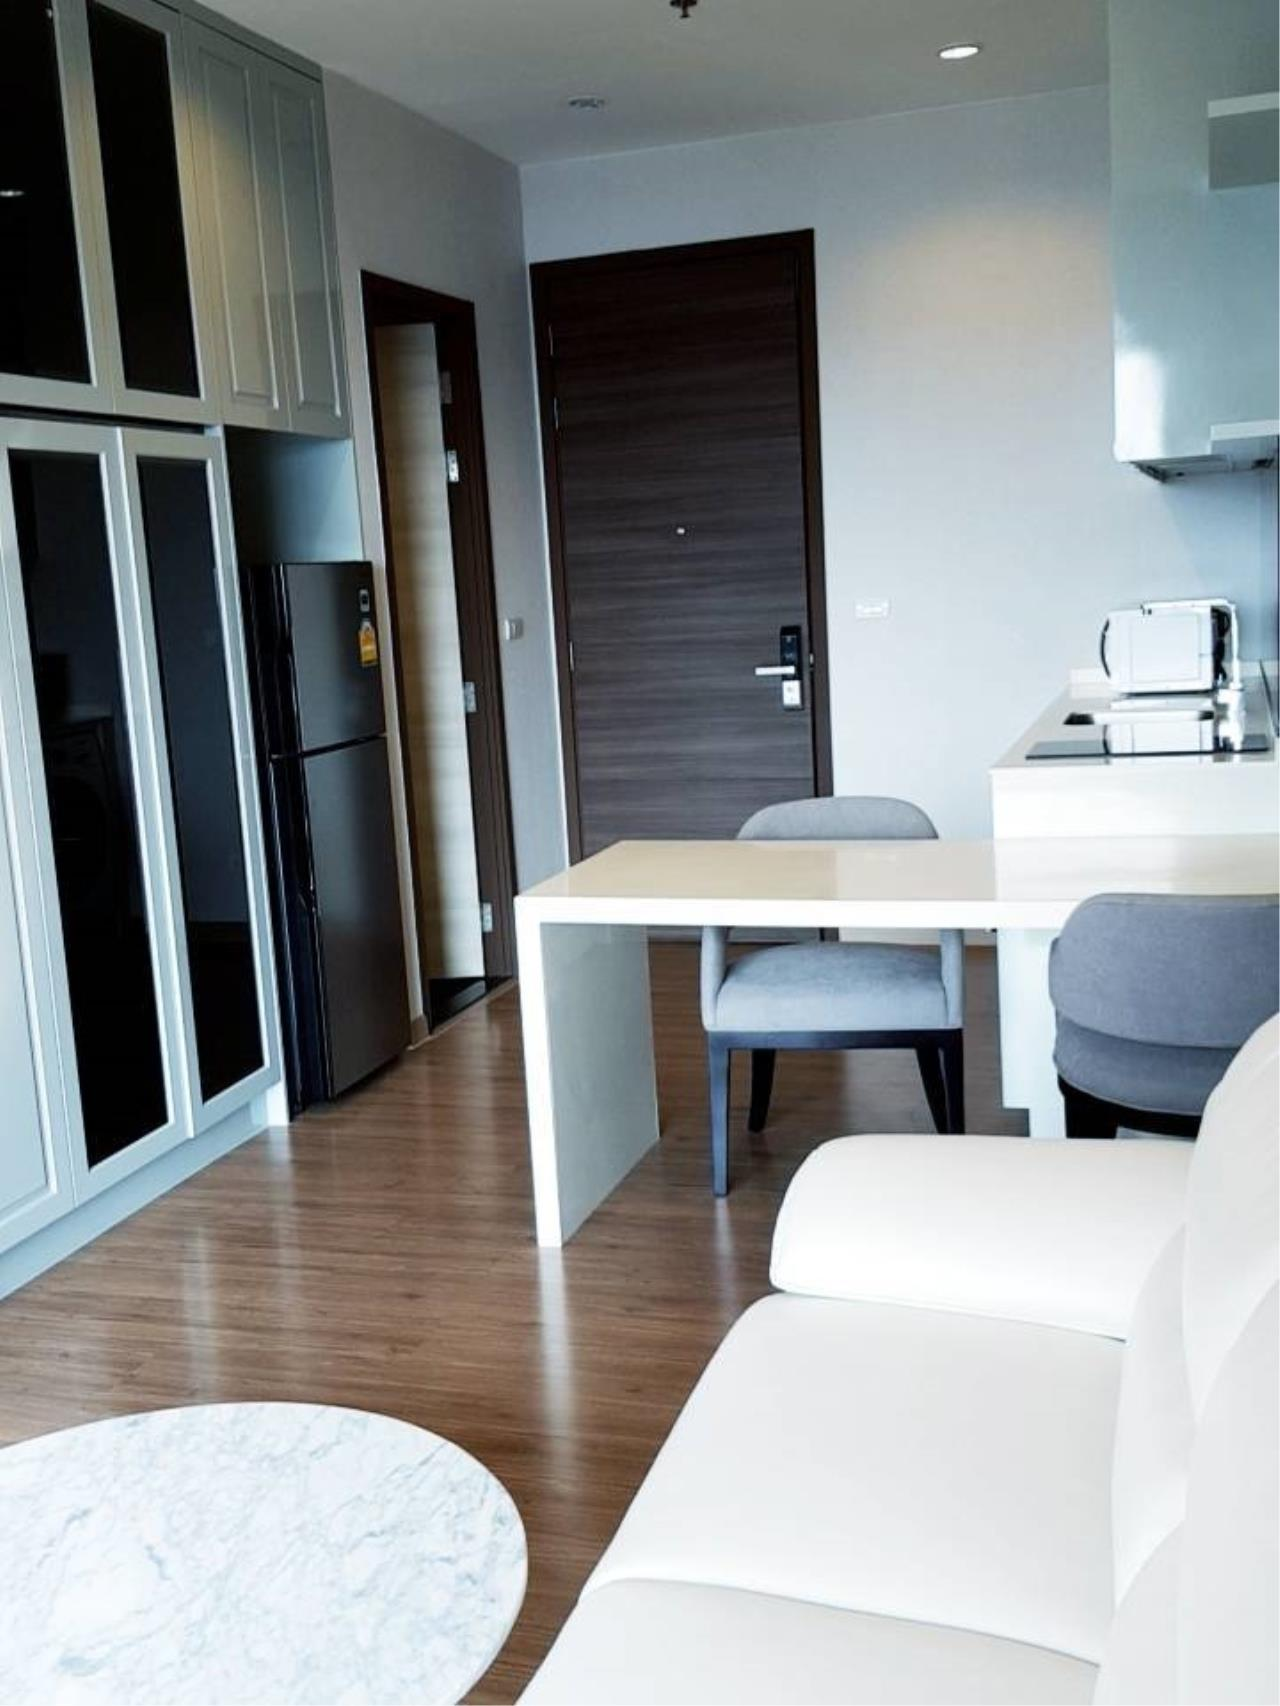 Uptown Assets  Agency's FOR Rent Chewathai Residence Bang Pho Unit 20/59 Building A  11 Floor  1